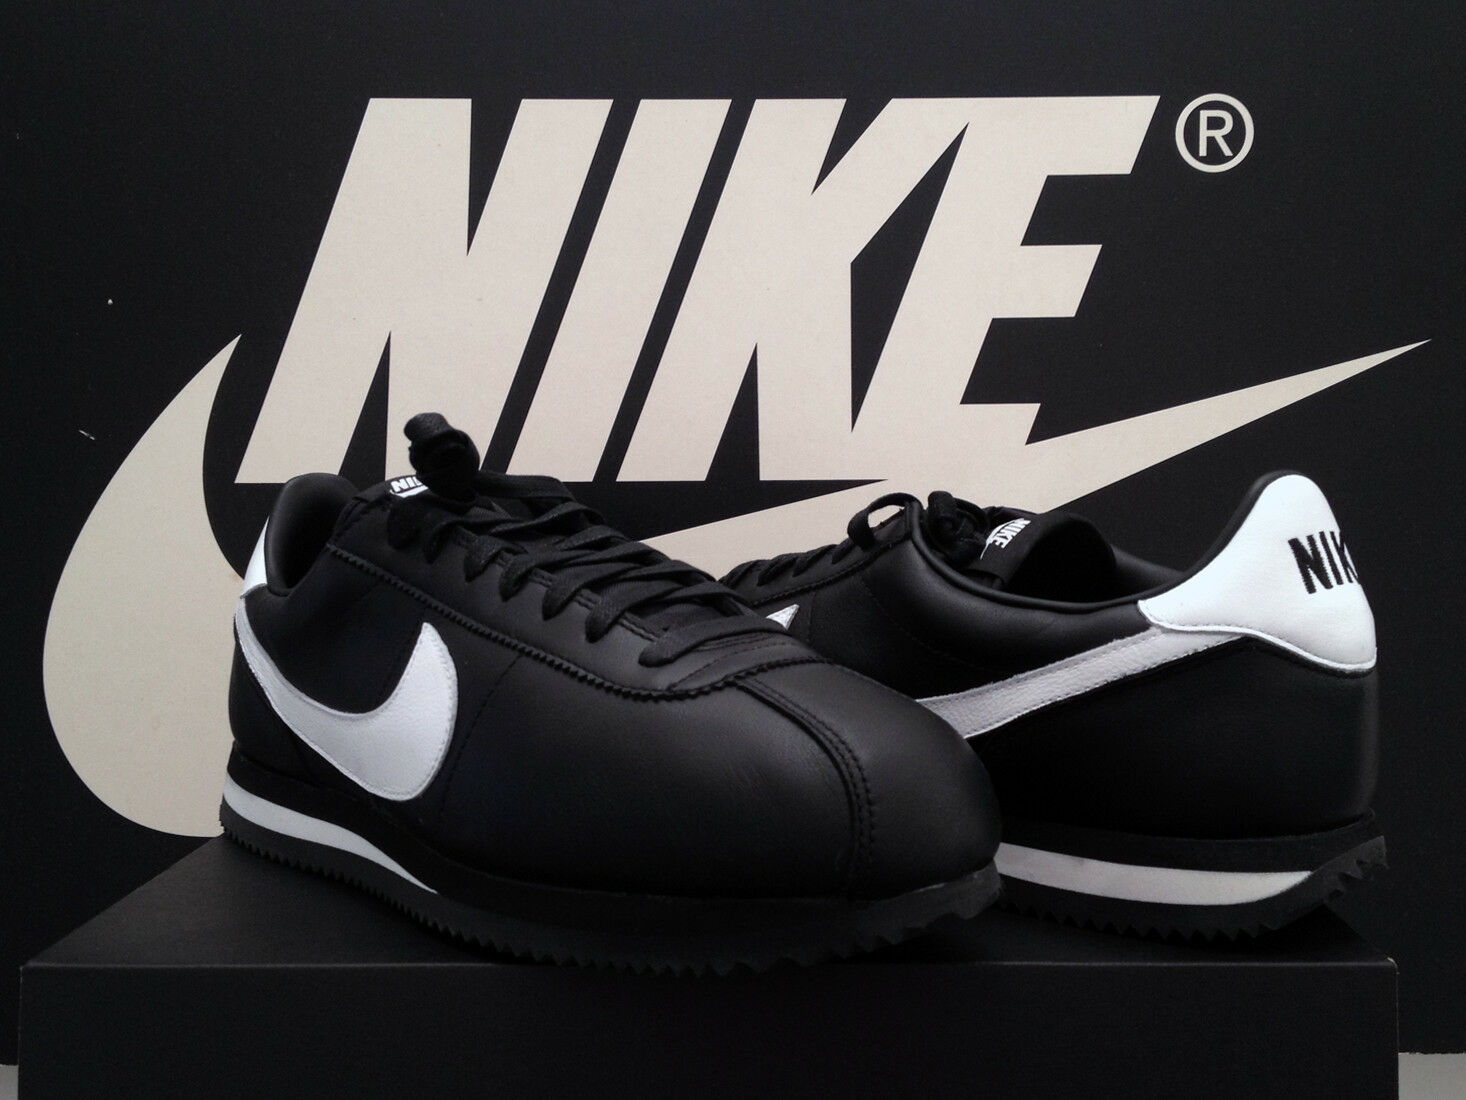 DS 2018 Nike Cortez Basic ID UK10.5 EU45.5 nero pelle II OG Dunk FORCE 1 RARA